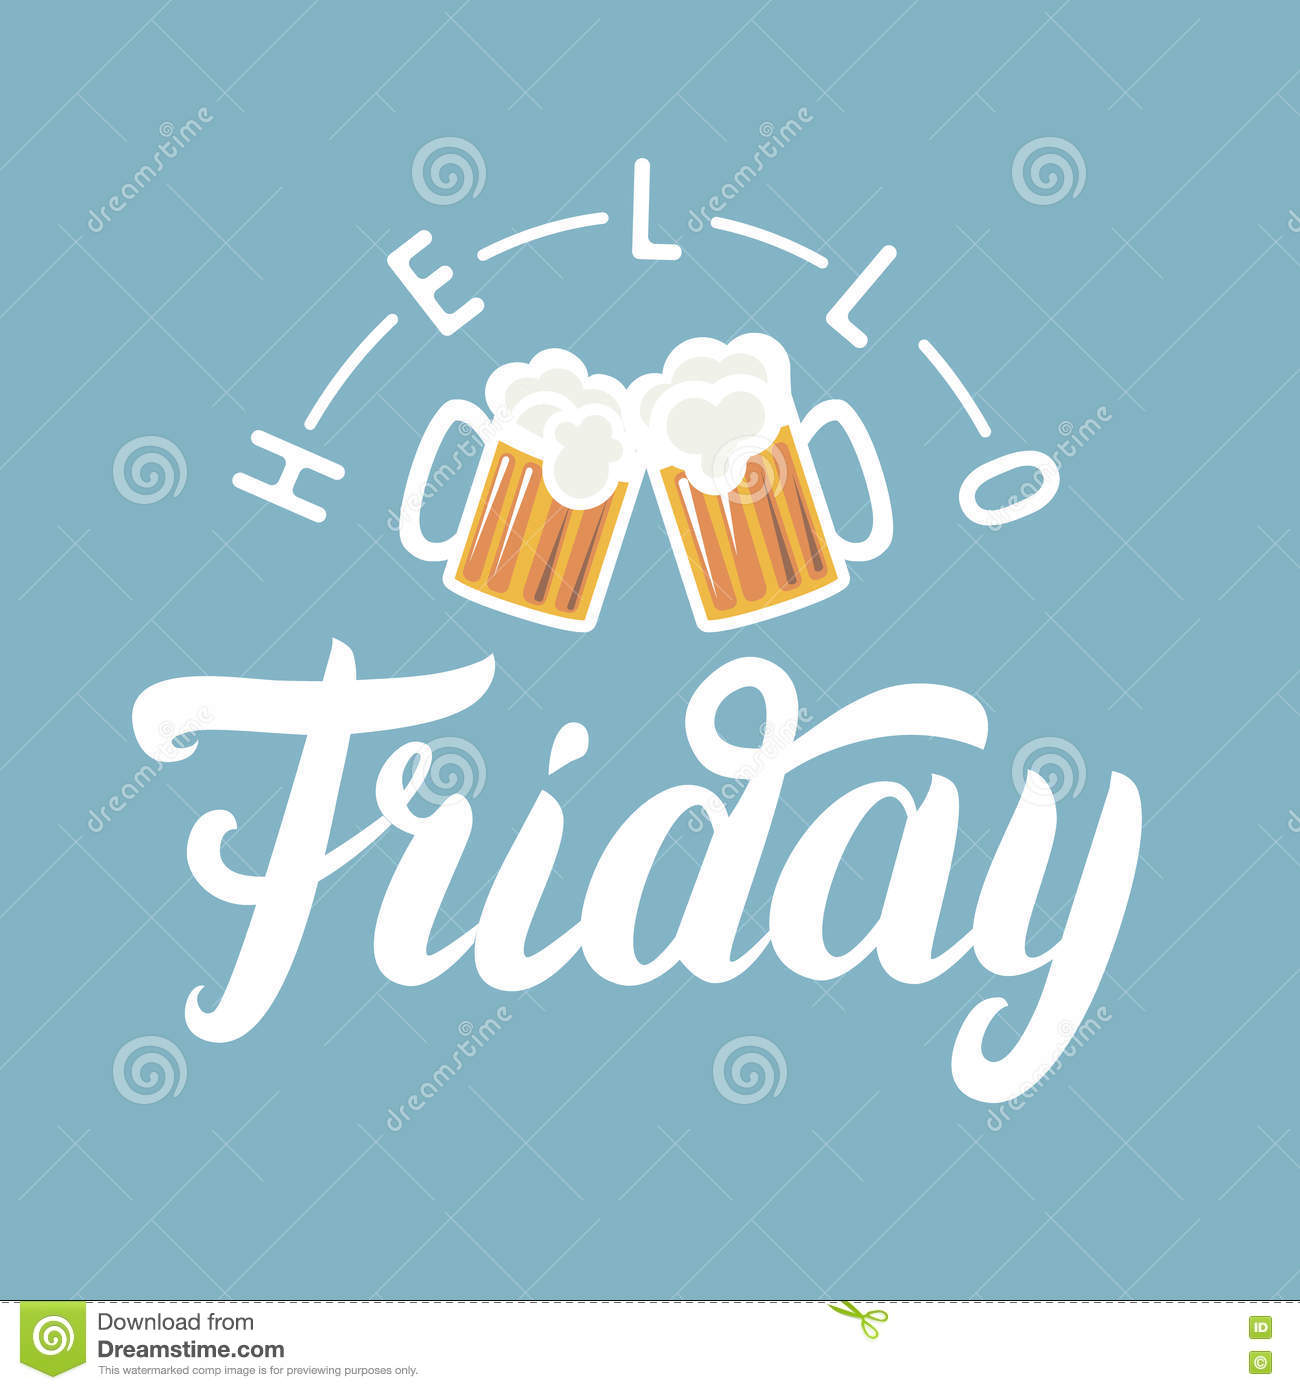 Hello friday hand lettering with pint of beer on blue background hello friday hand lettering with pint of beer on blue background voltagebd Images